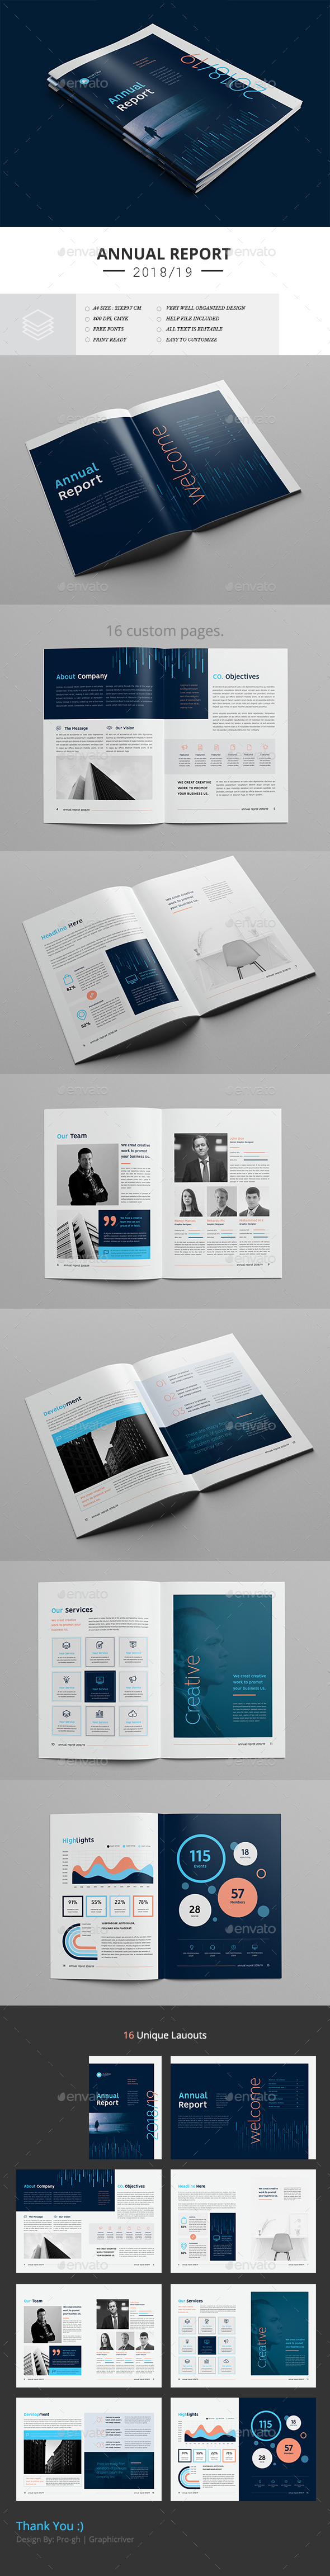 Annual Report 2018/19 - Corporate Brochures